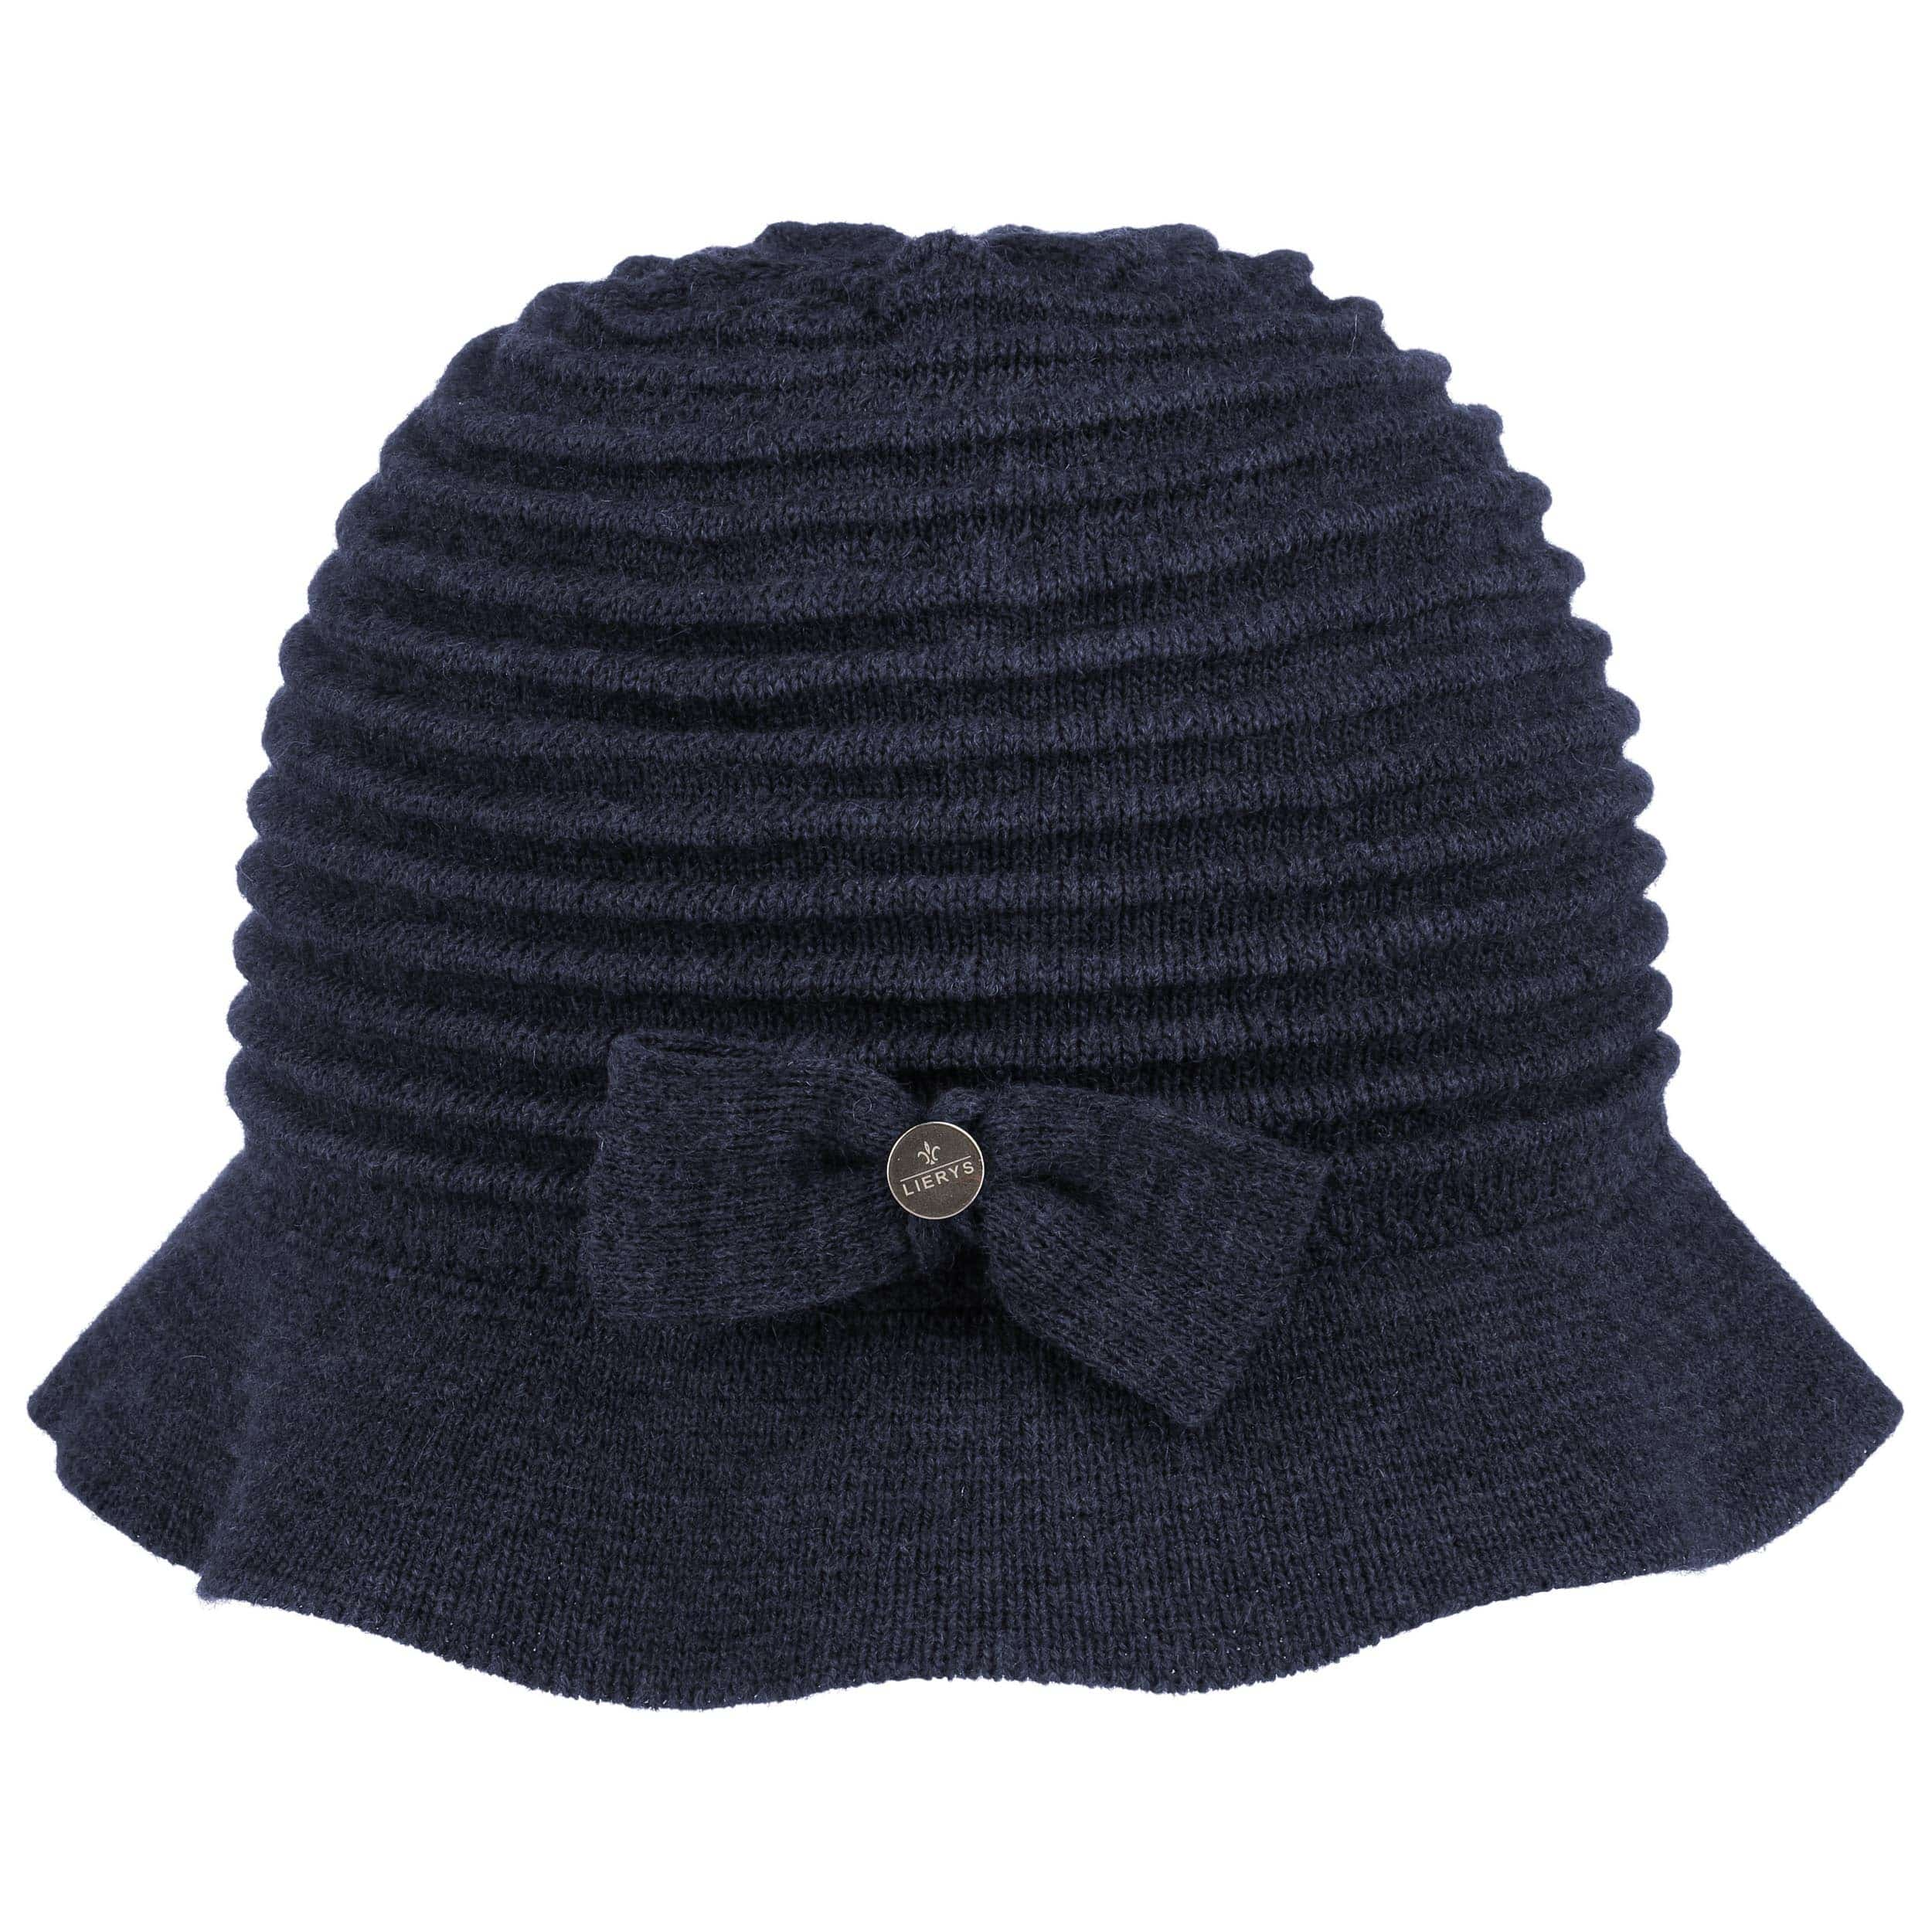 Classico Knit Hat by Lierys Cloth hats Lierys zFGnmd2u6